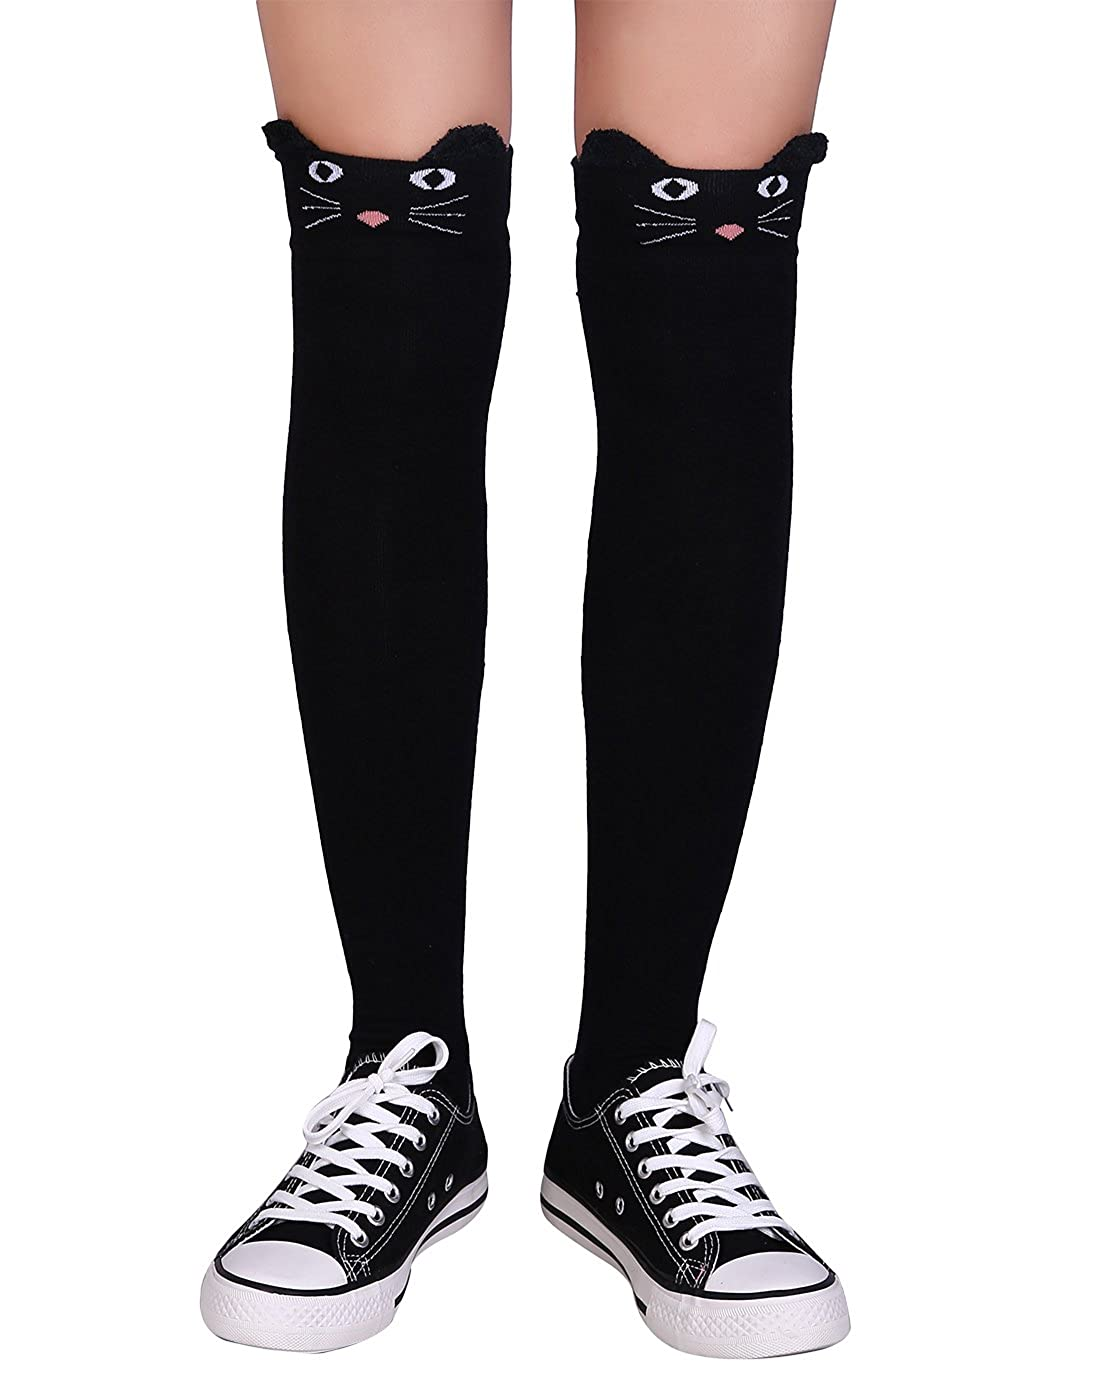 a15262dd4626d HDE Women's Cat Cartoon Animal Mock Thigh High Tights - Black Neko Cat  Stockings at Amazon Women's Clothing store: